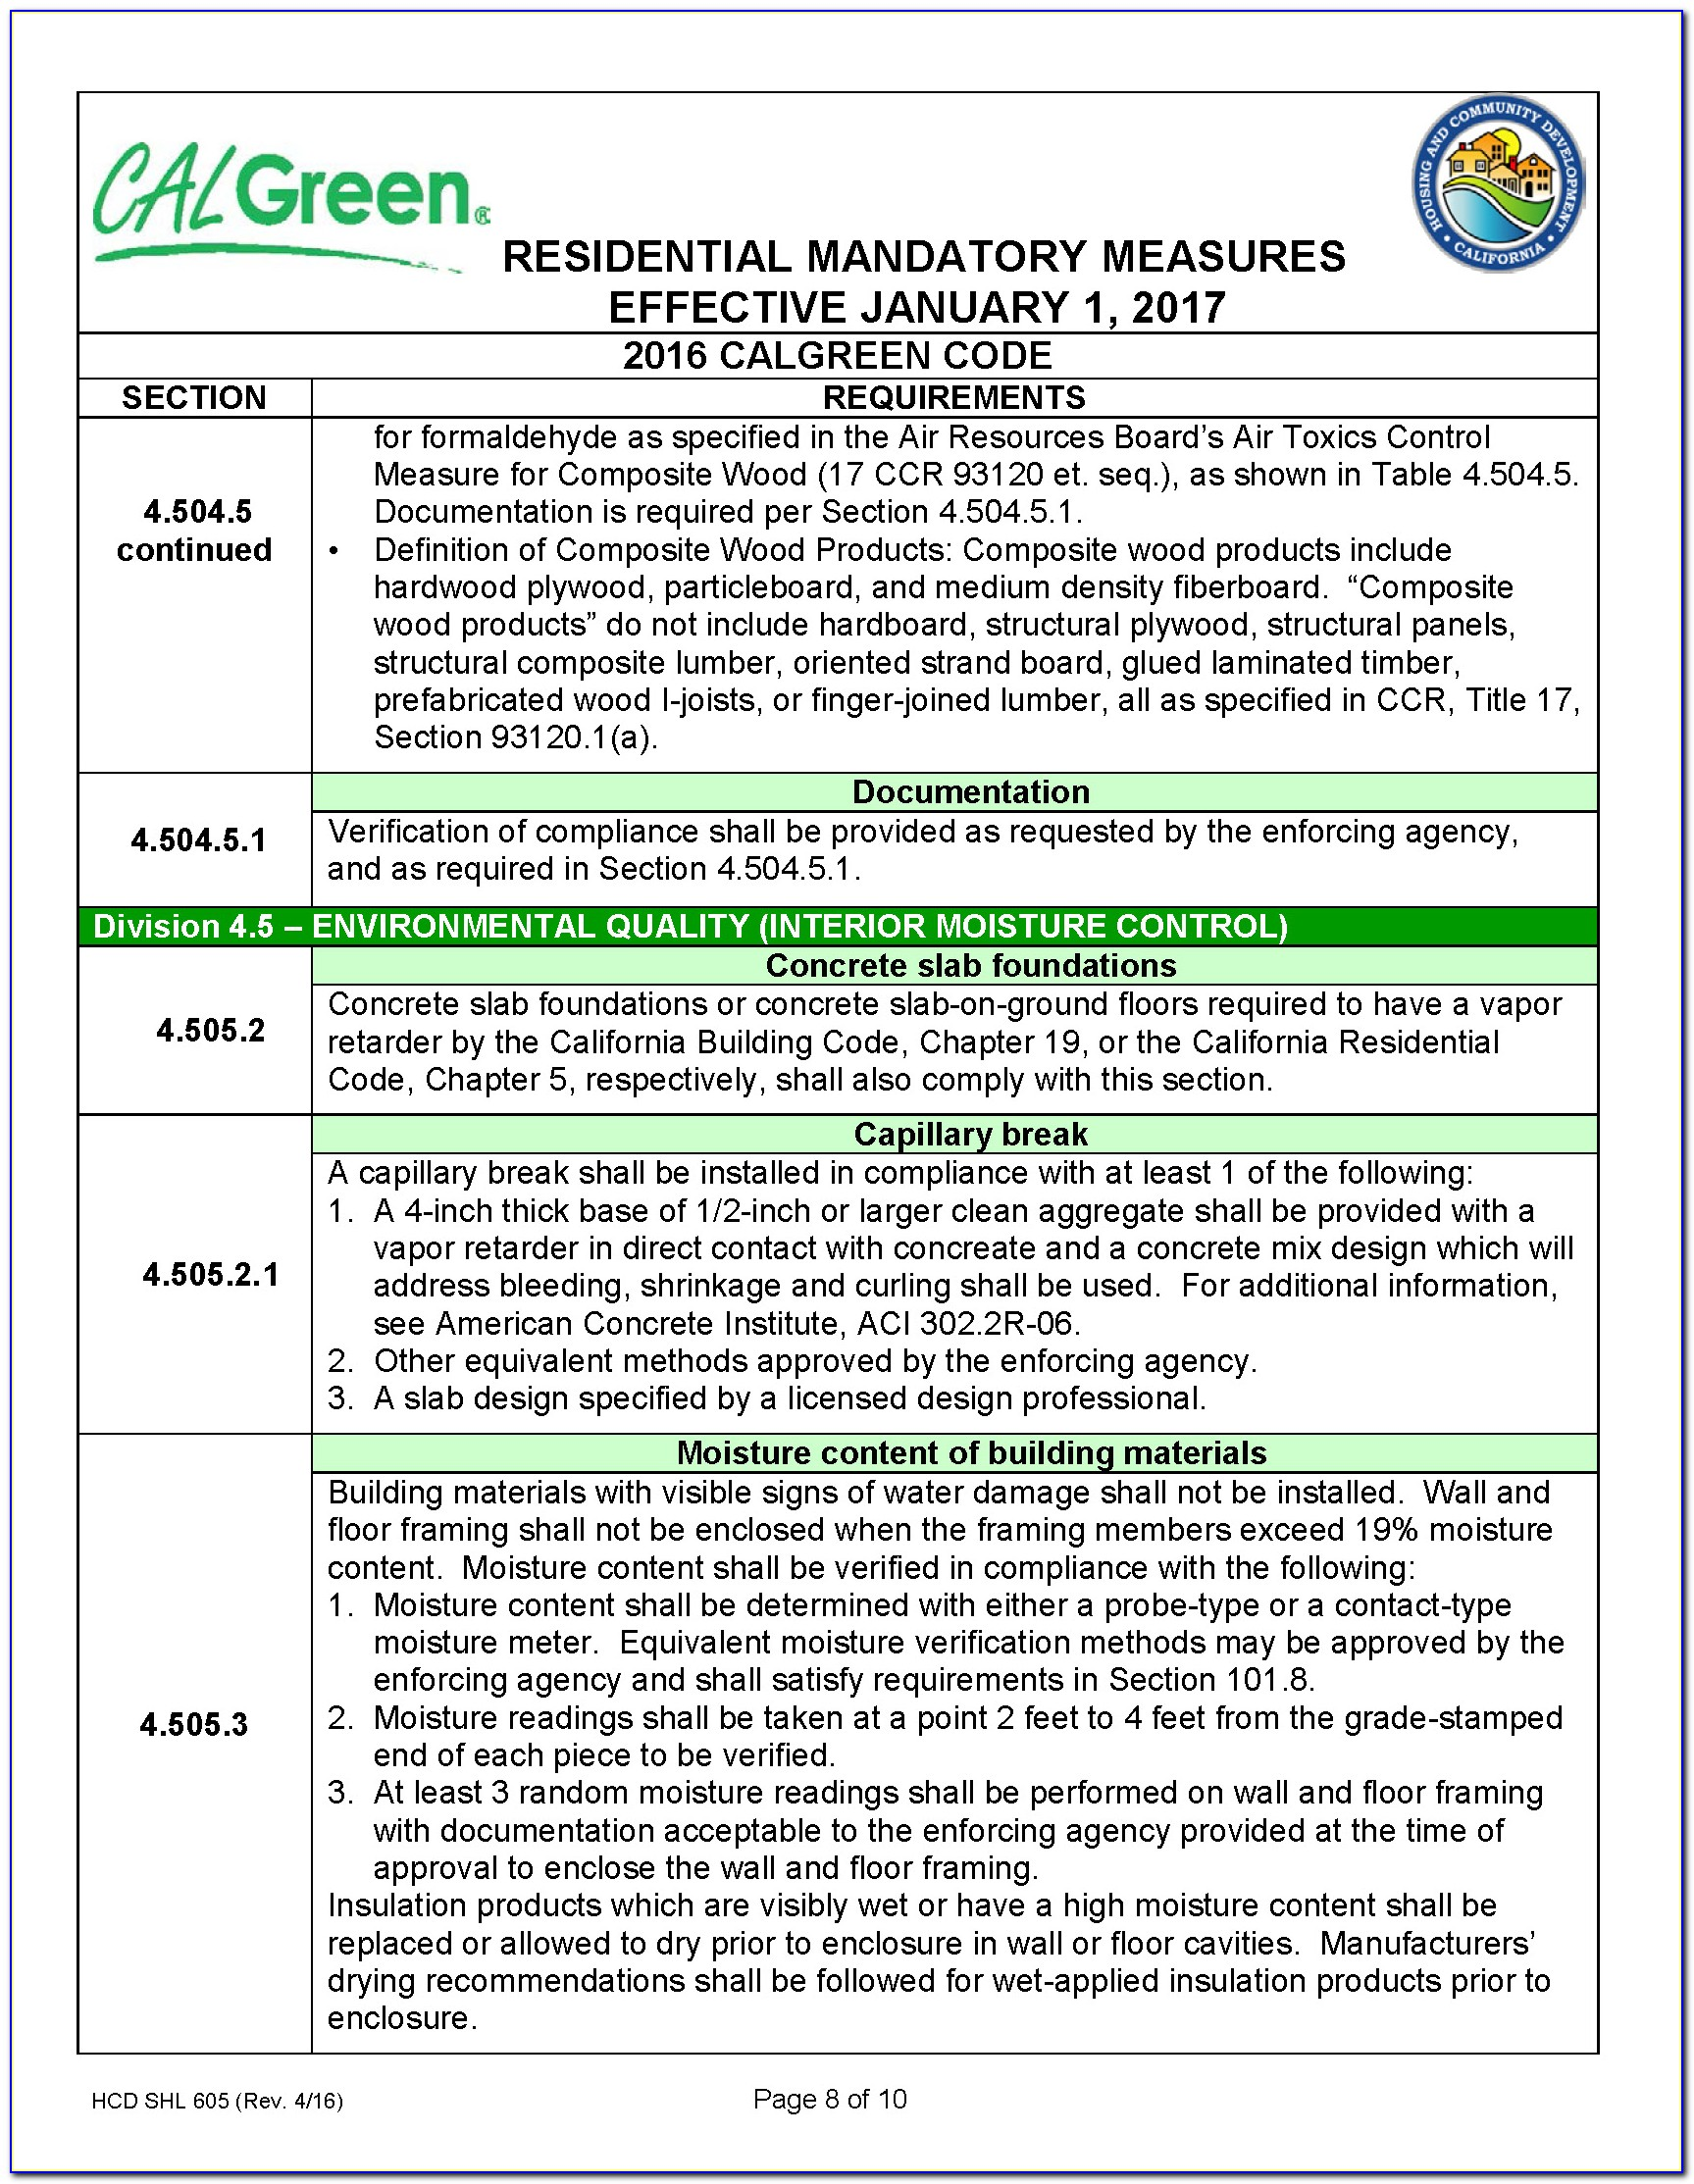 2013 Title 24 Compliance Forms